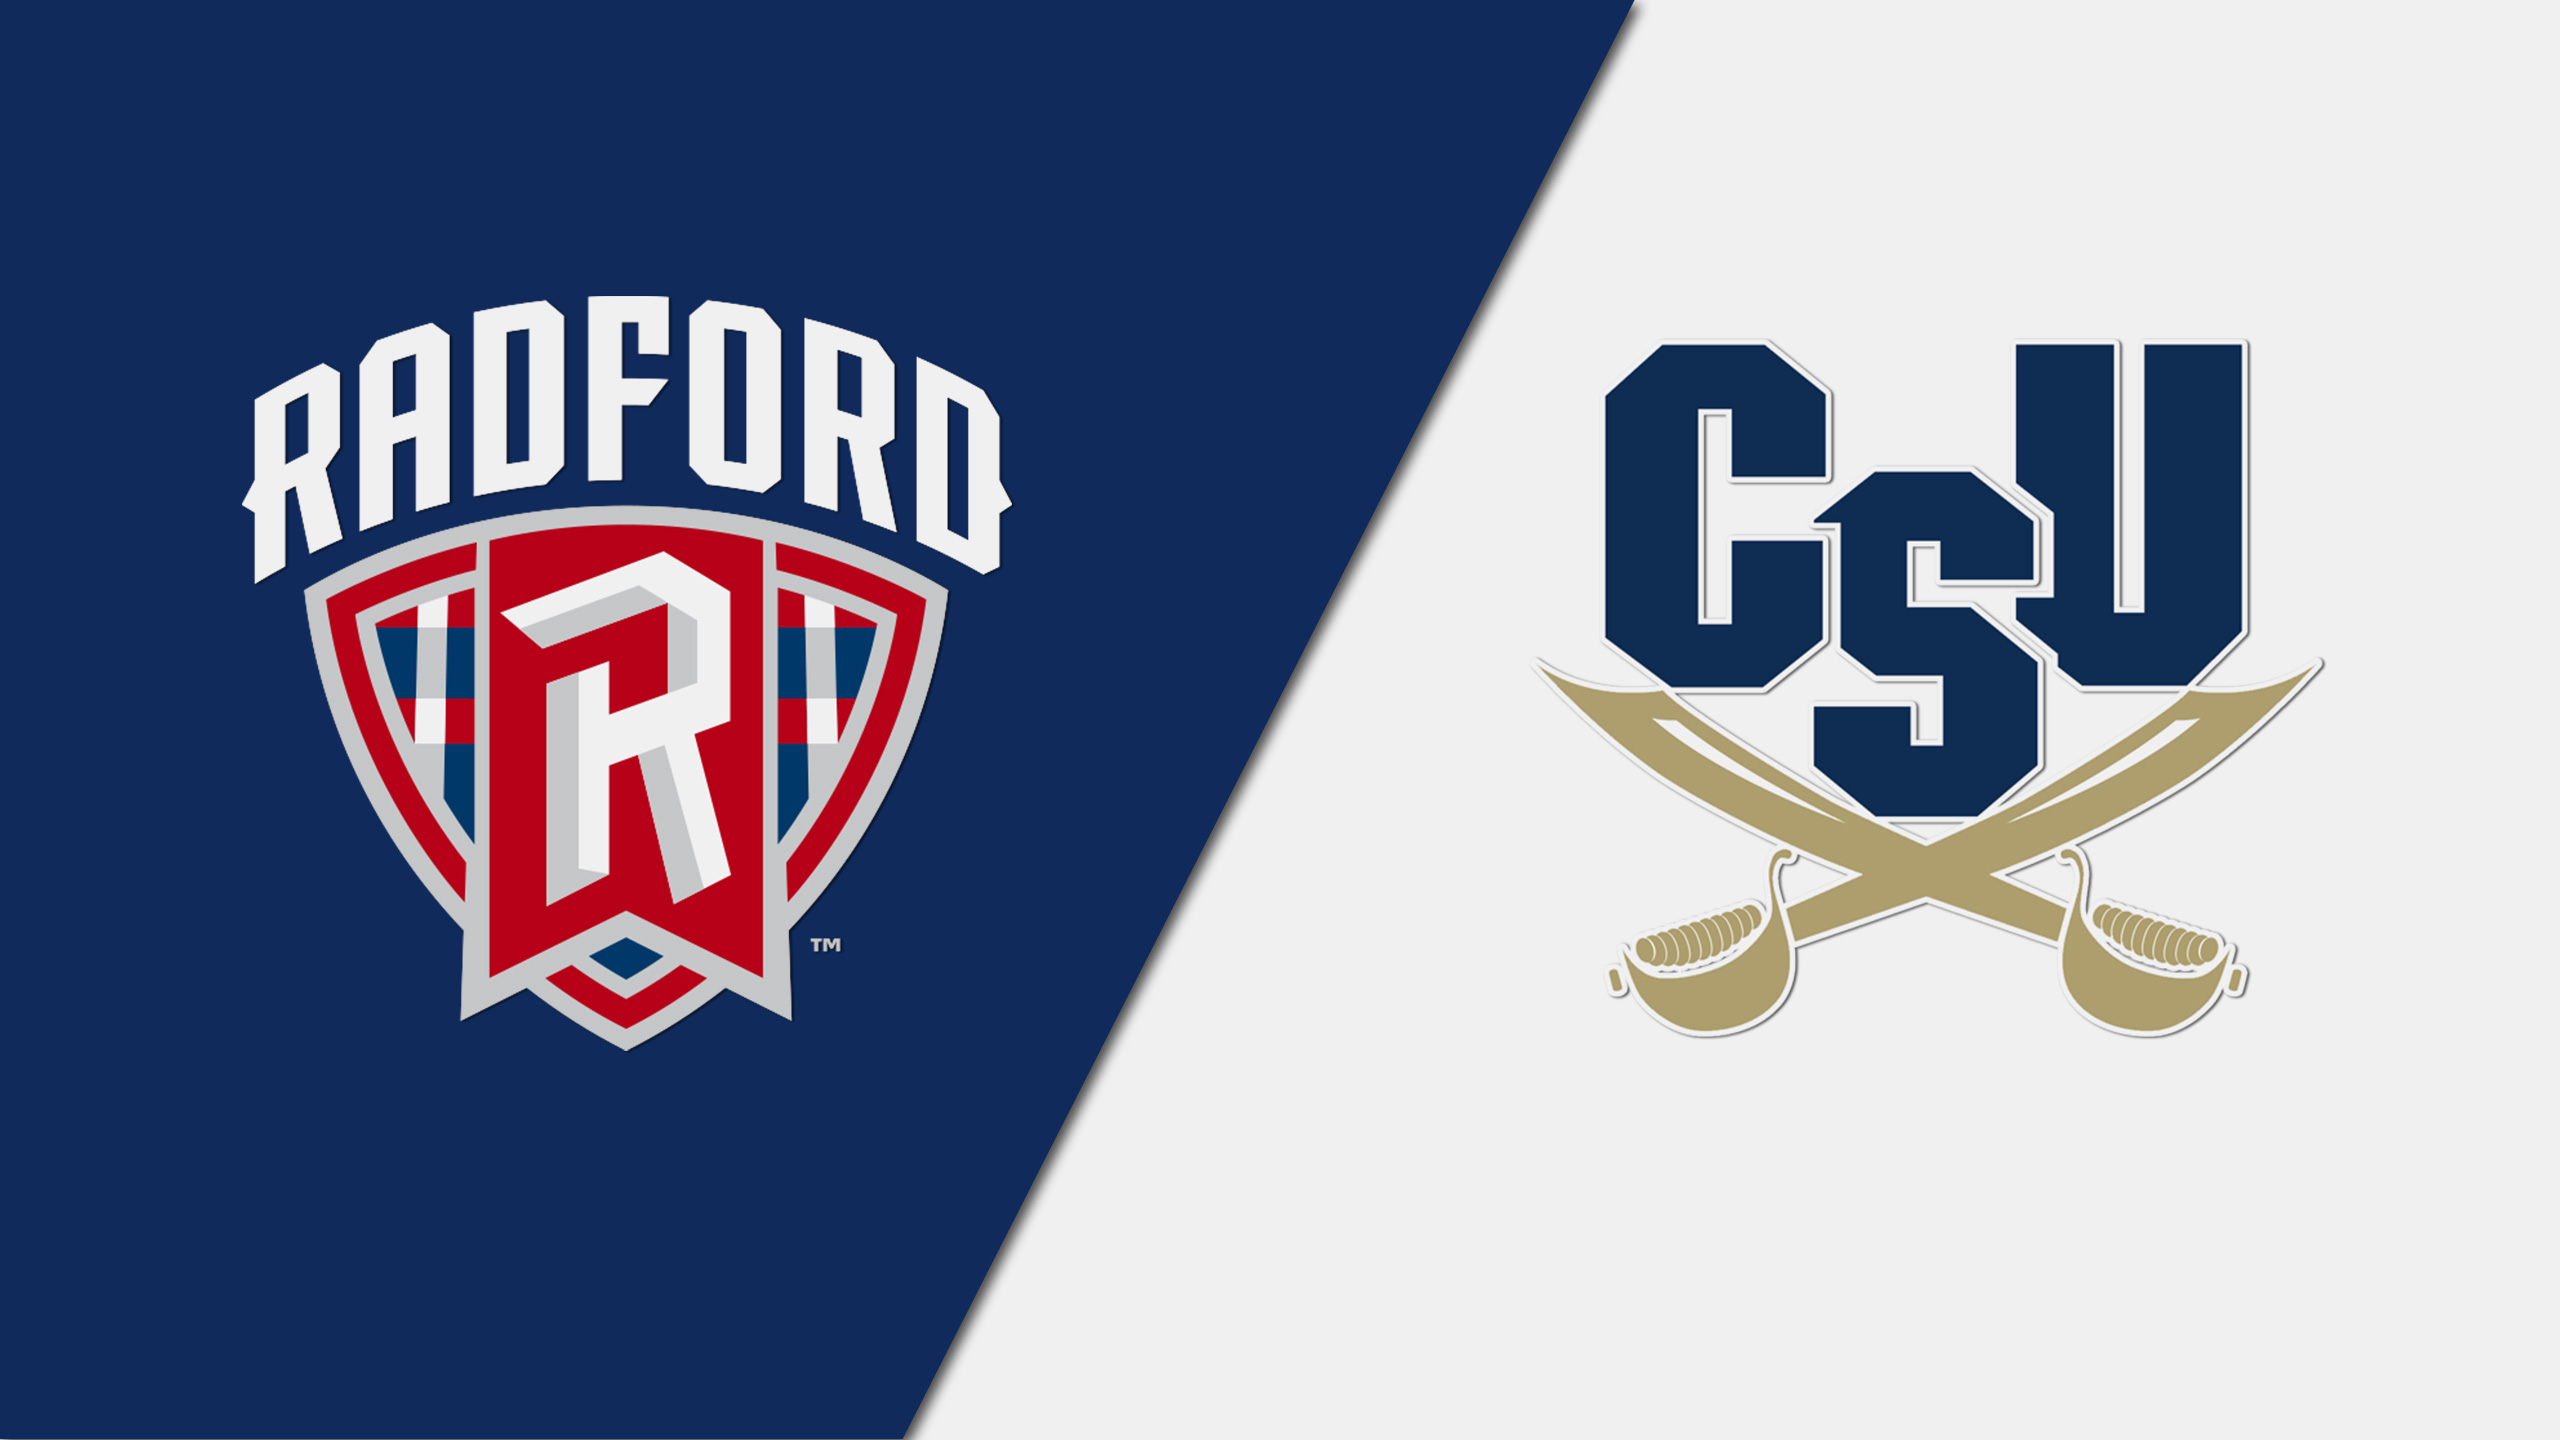 Radford vs. Charleston Southern (M Basketball)